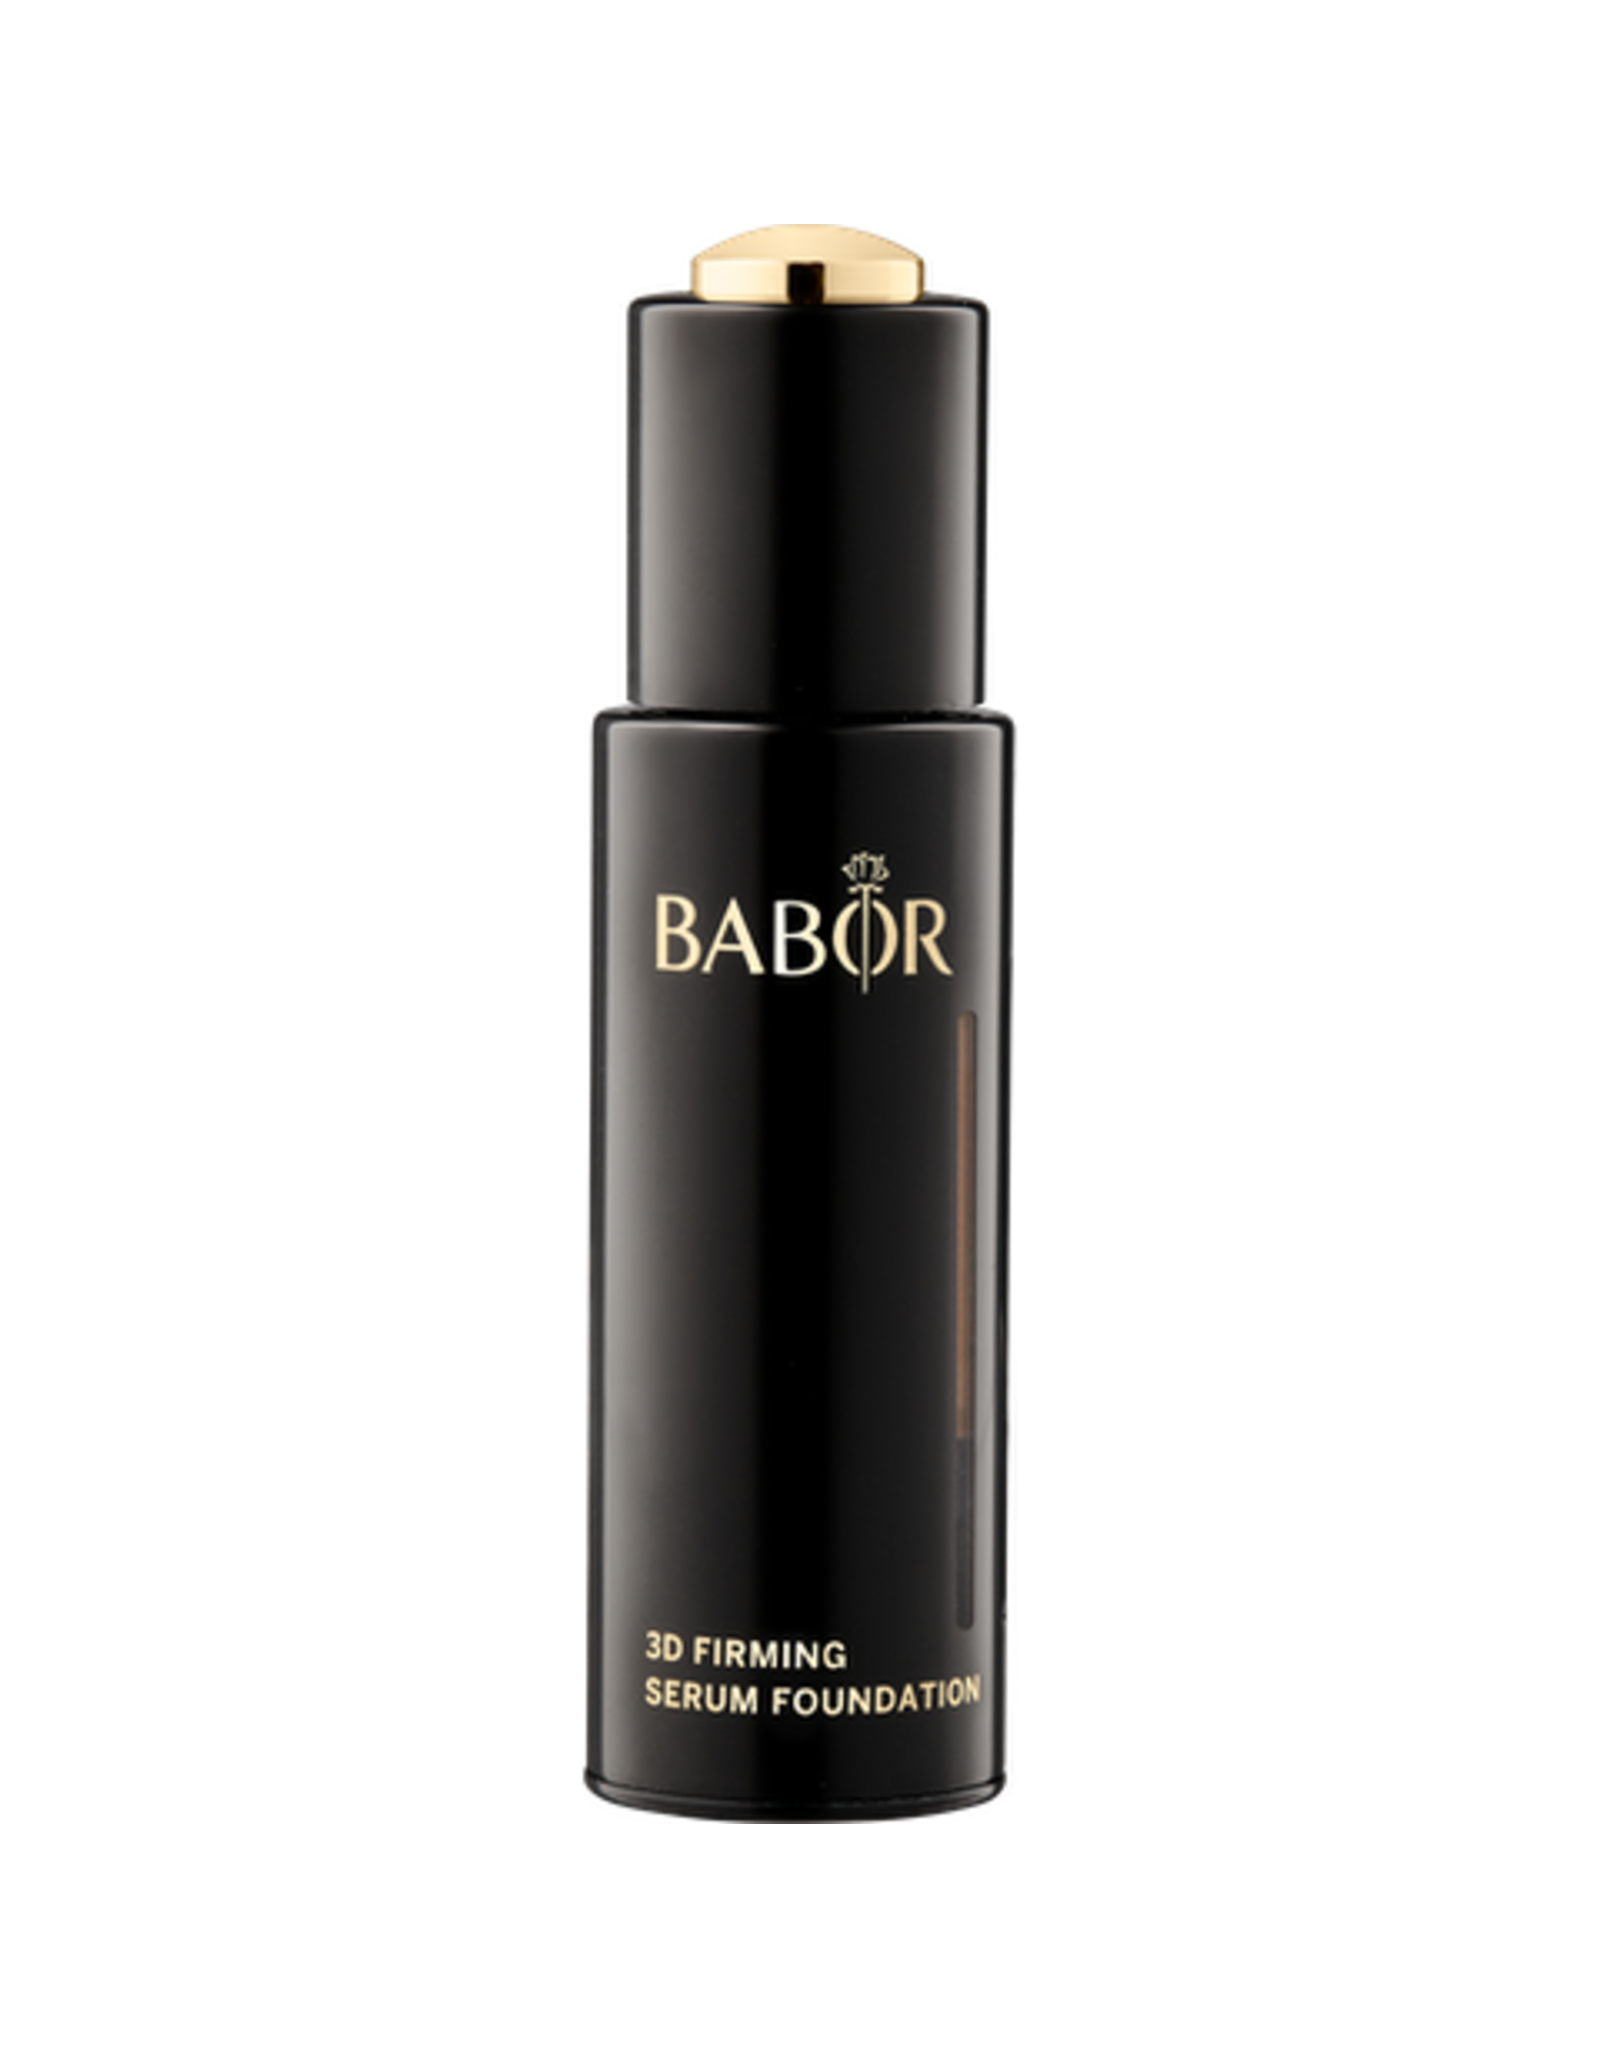 BABOR 3D FIRMING SERUM FOUNDATION 02 IVORY